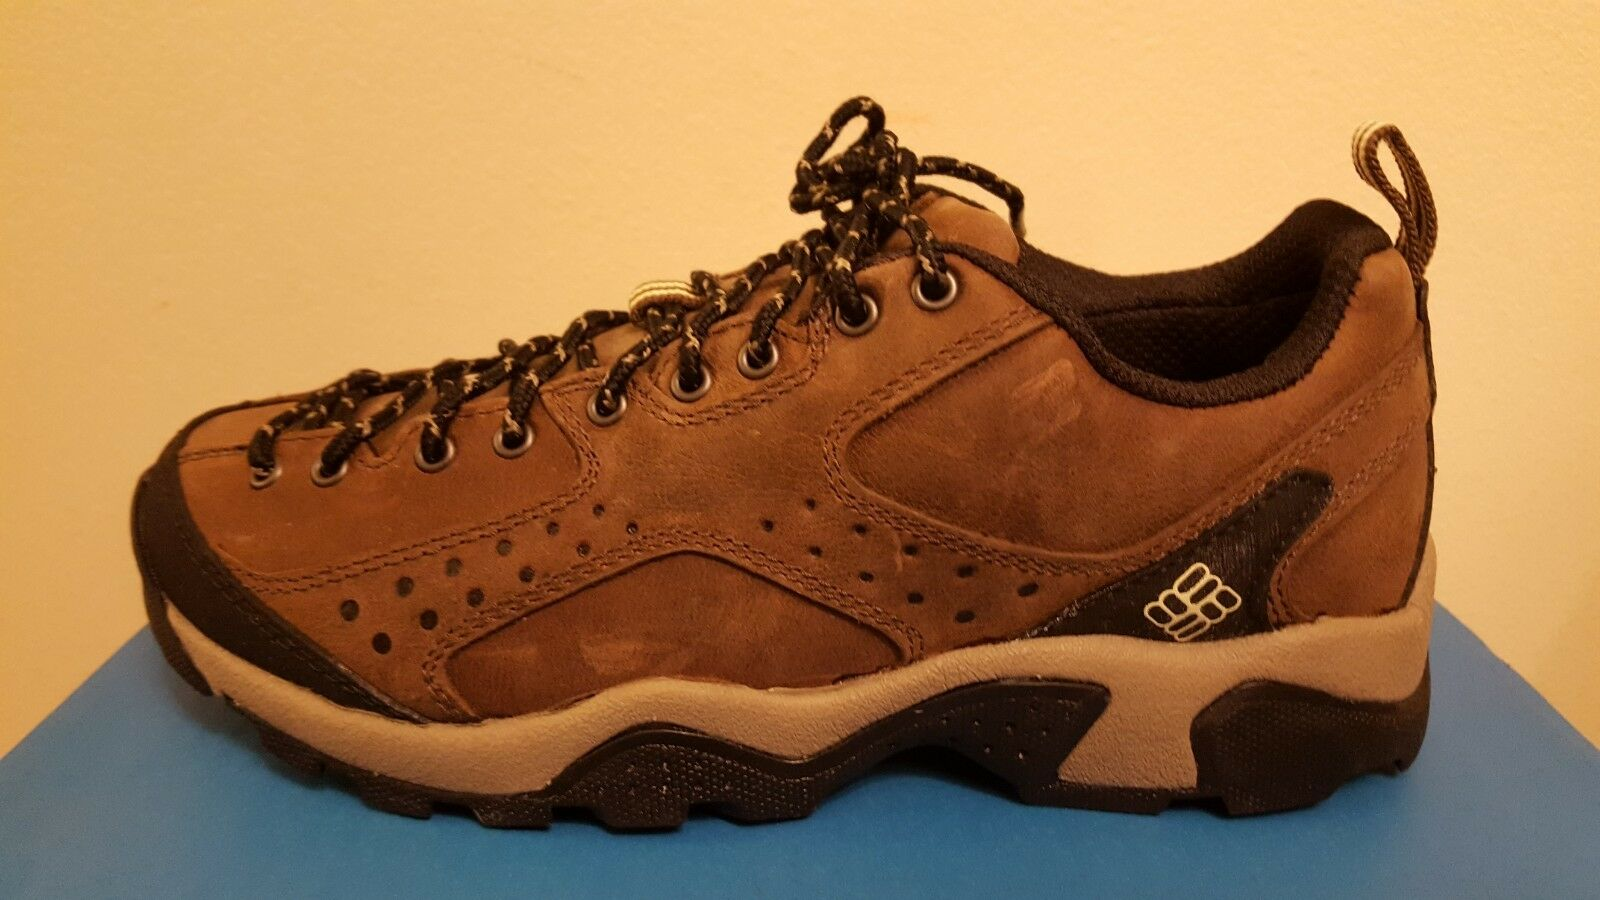 Women's Columbia BOWENCONSTRICTOR Brown Hiking shoes Size 6.5